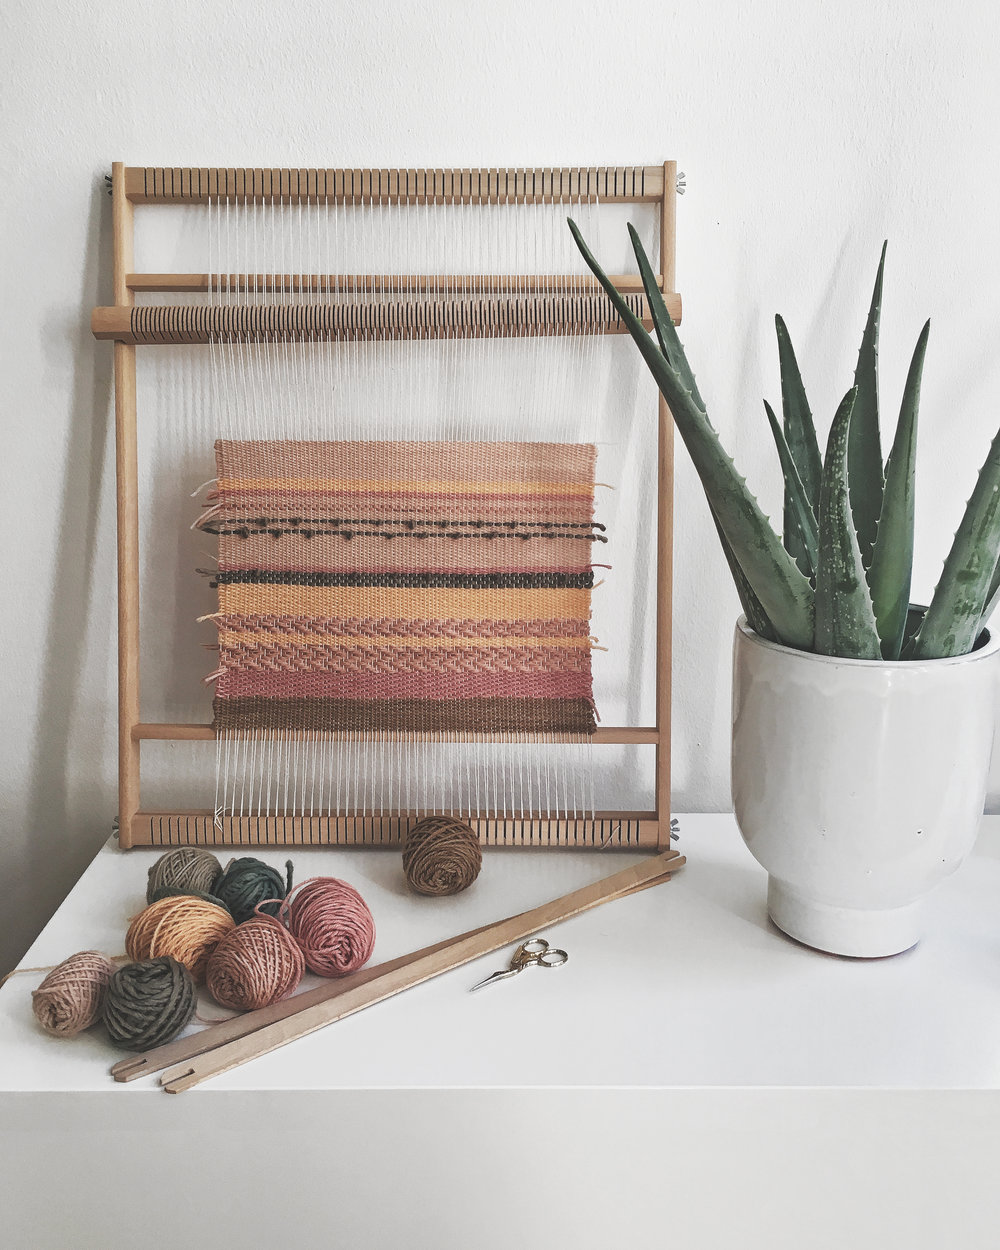 Weaving fabric on a frame loom